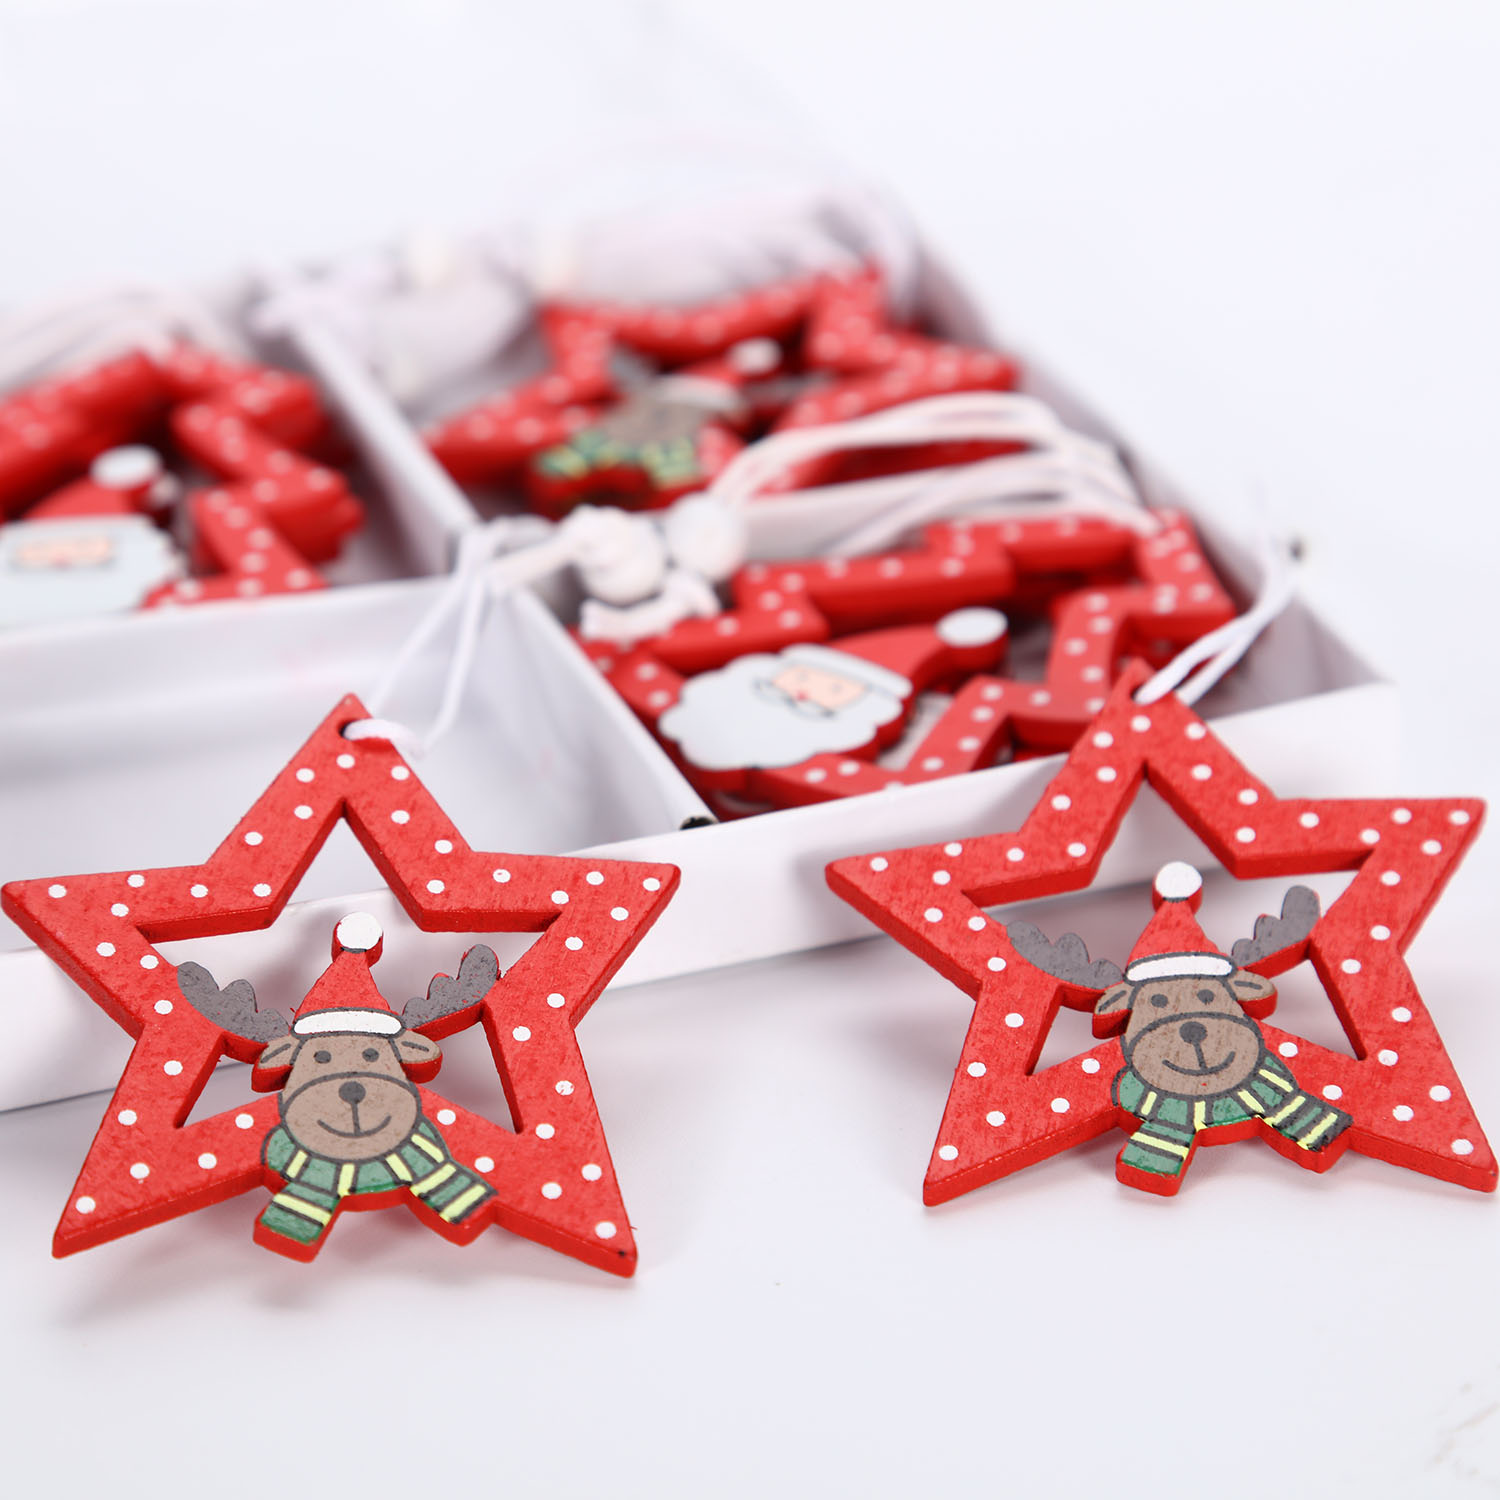 12 pieces of small tree five-pointed star Christmas wooden gift ornaments European style home color cartoon cute ornaments